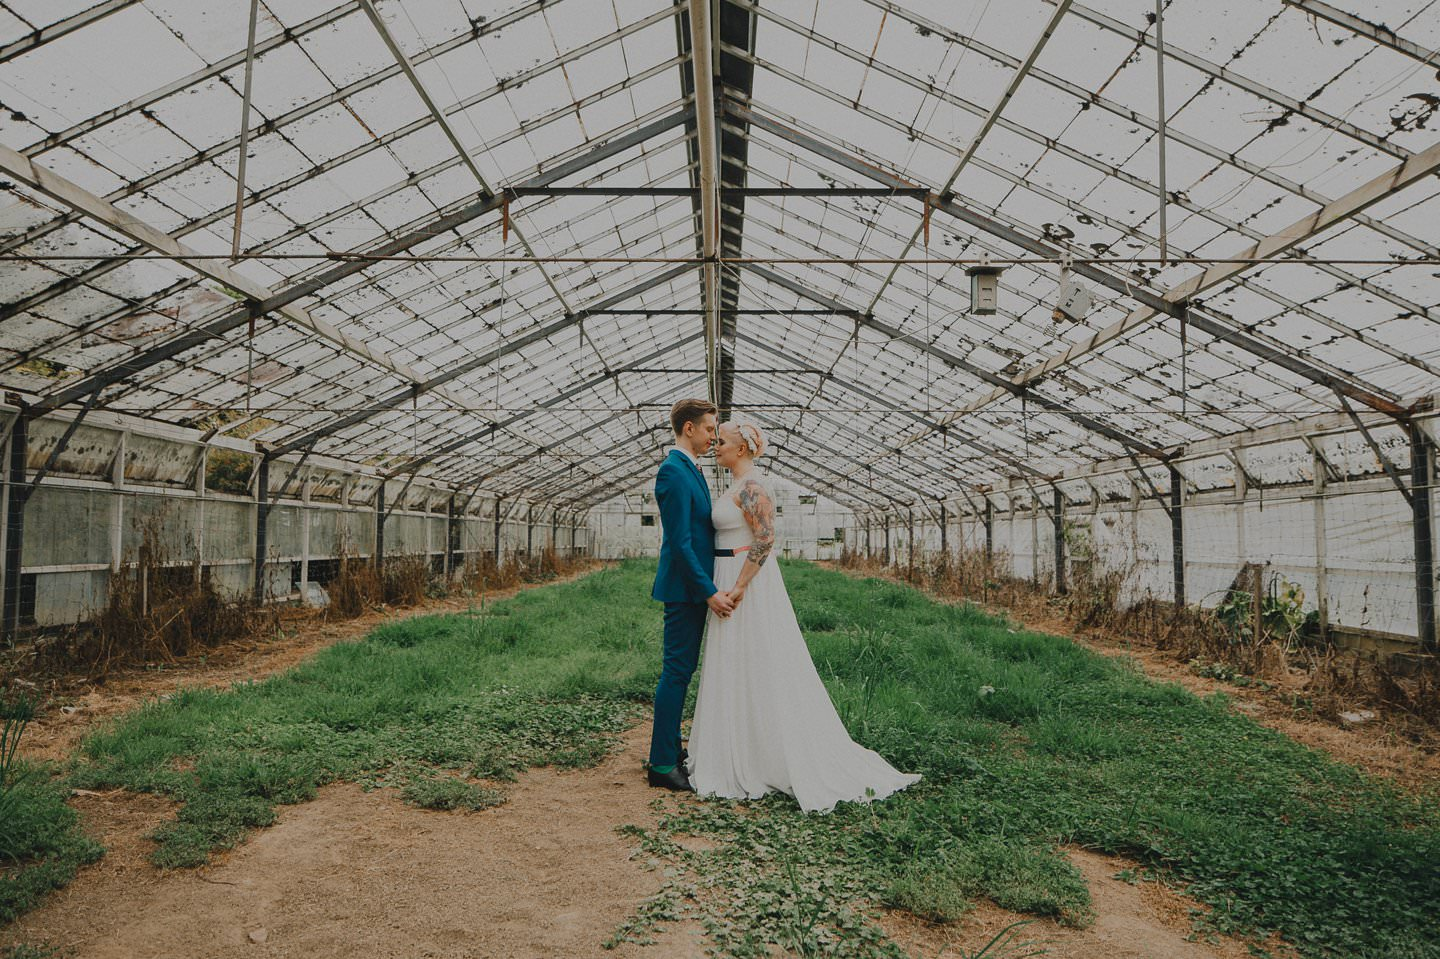 Hispter wedding with alternative couple in a glasshouse